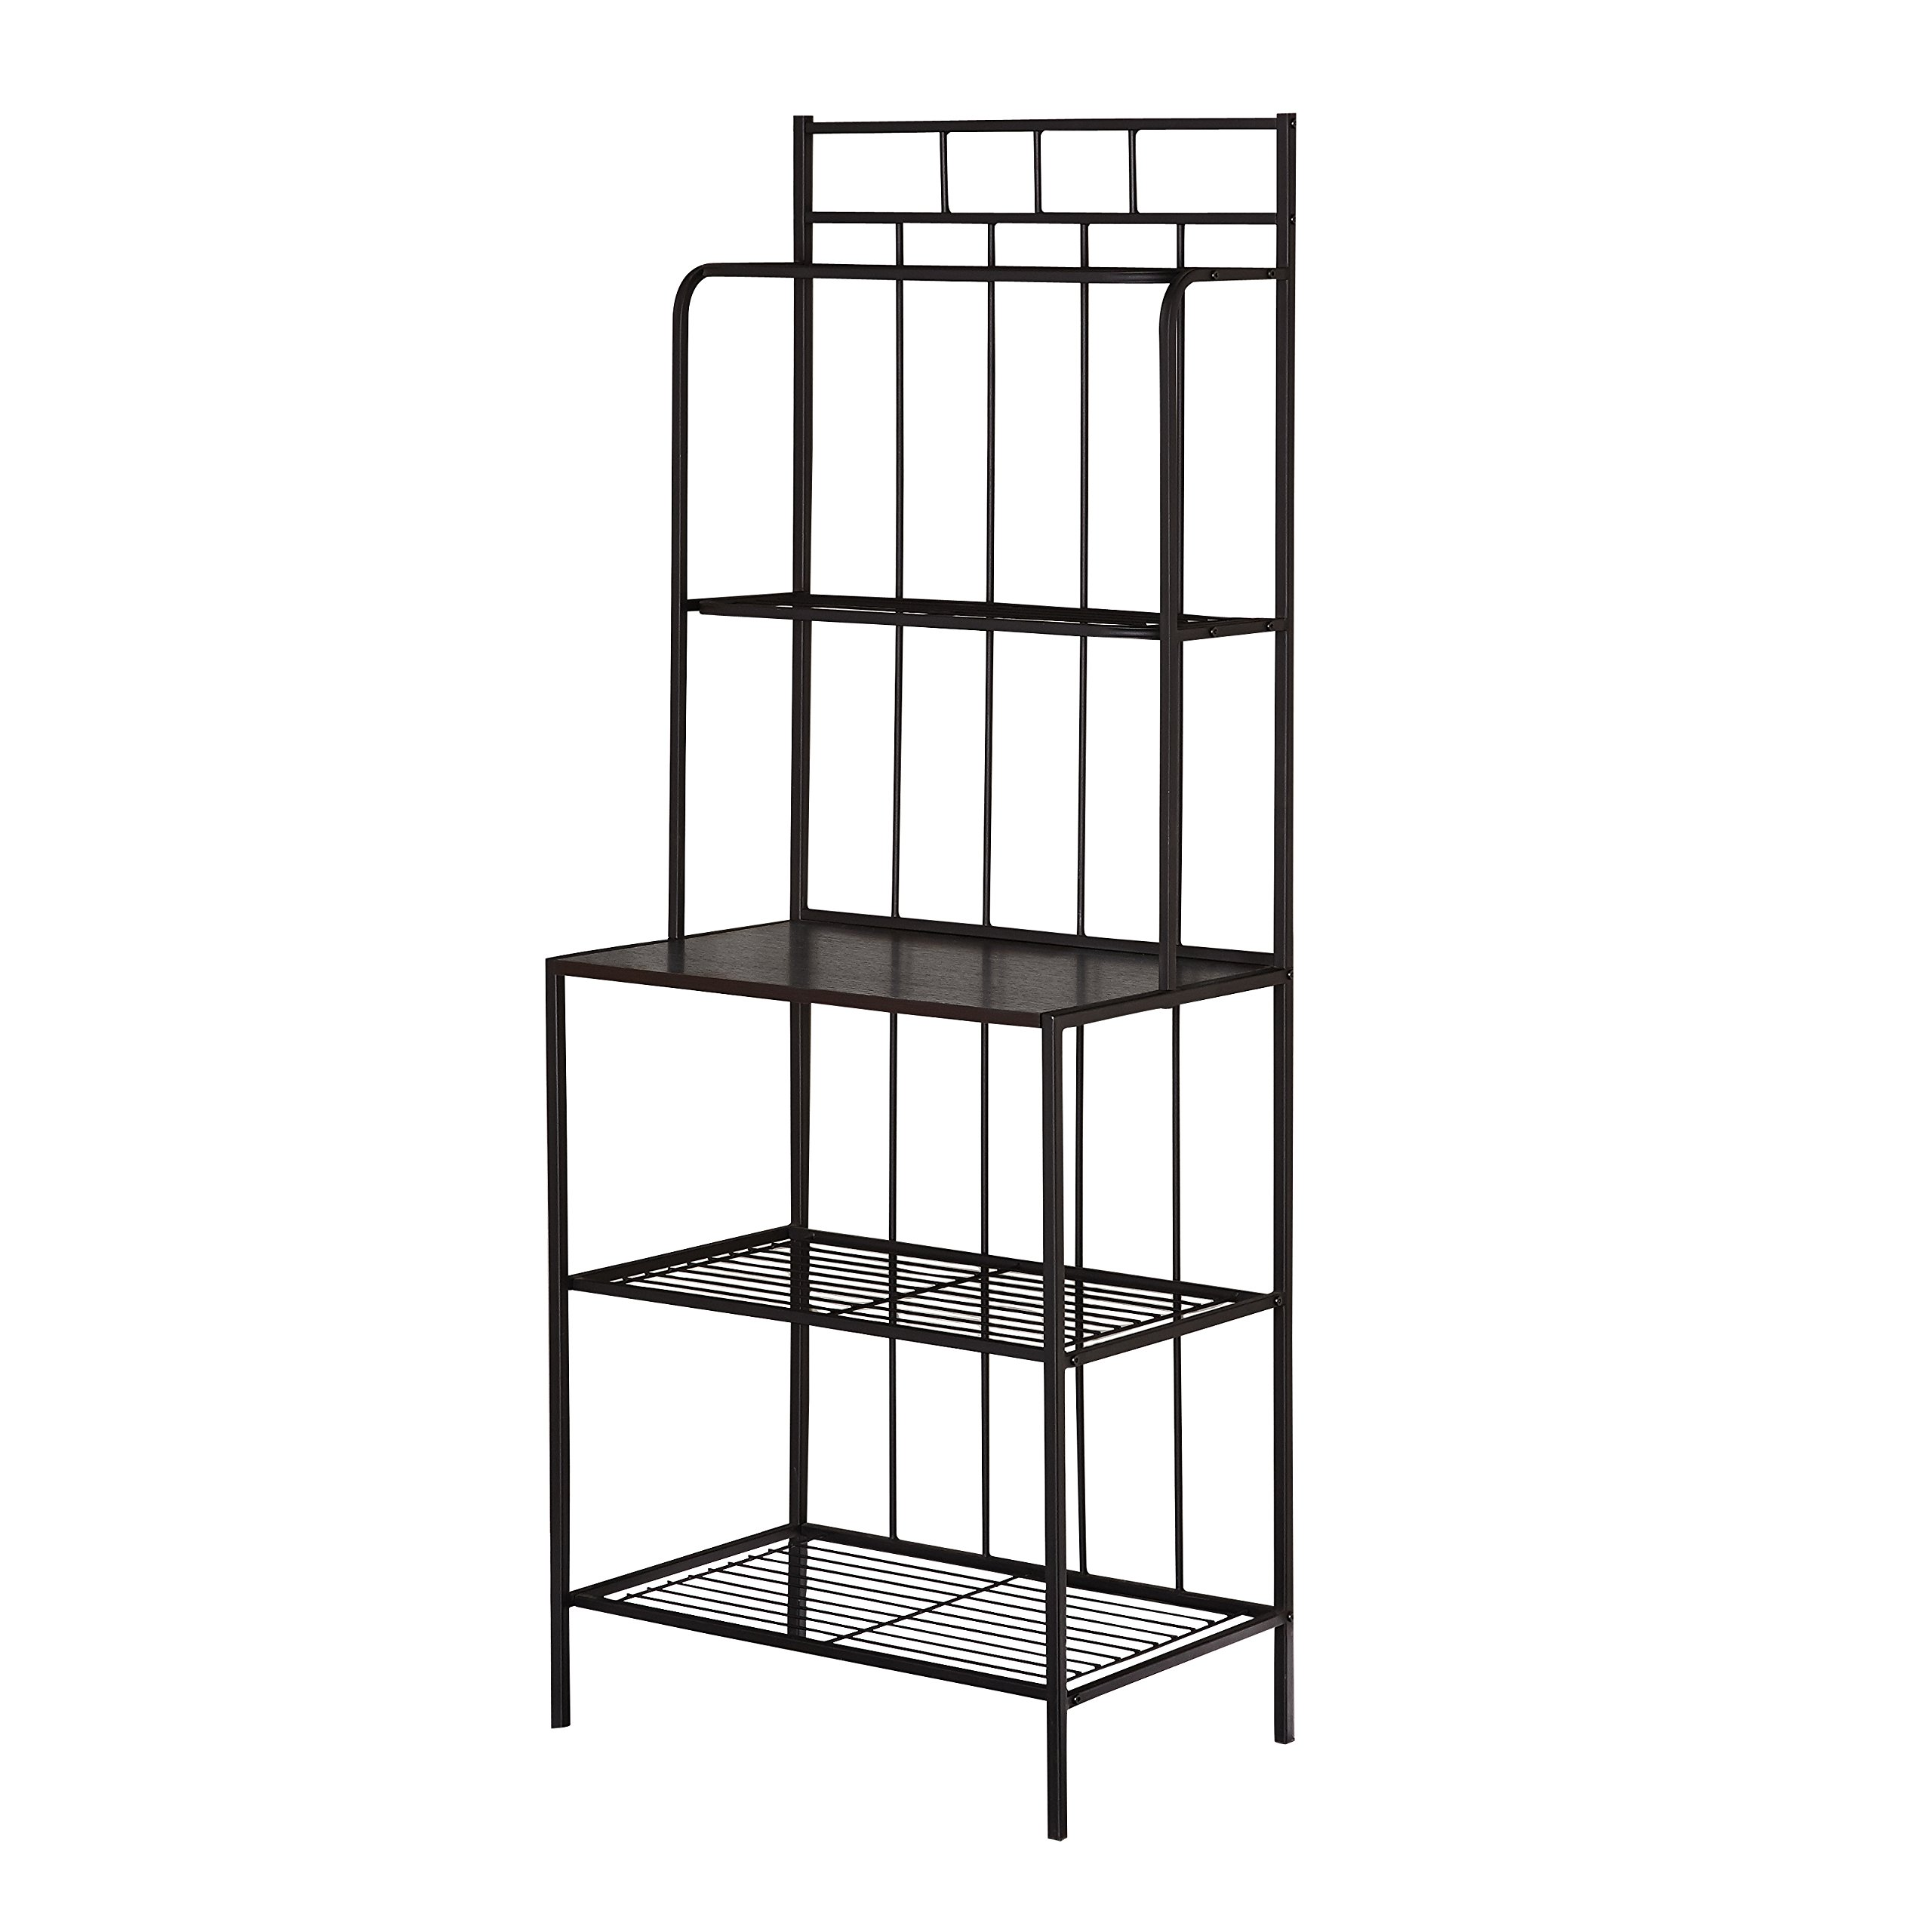 Target Marketing Systems Liv Collection Contemporary Metal Kitchen Dining Baker's Rack with Three Shelves, Black by Target Marketing Systems